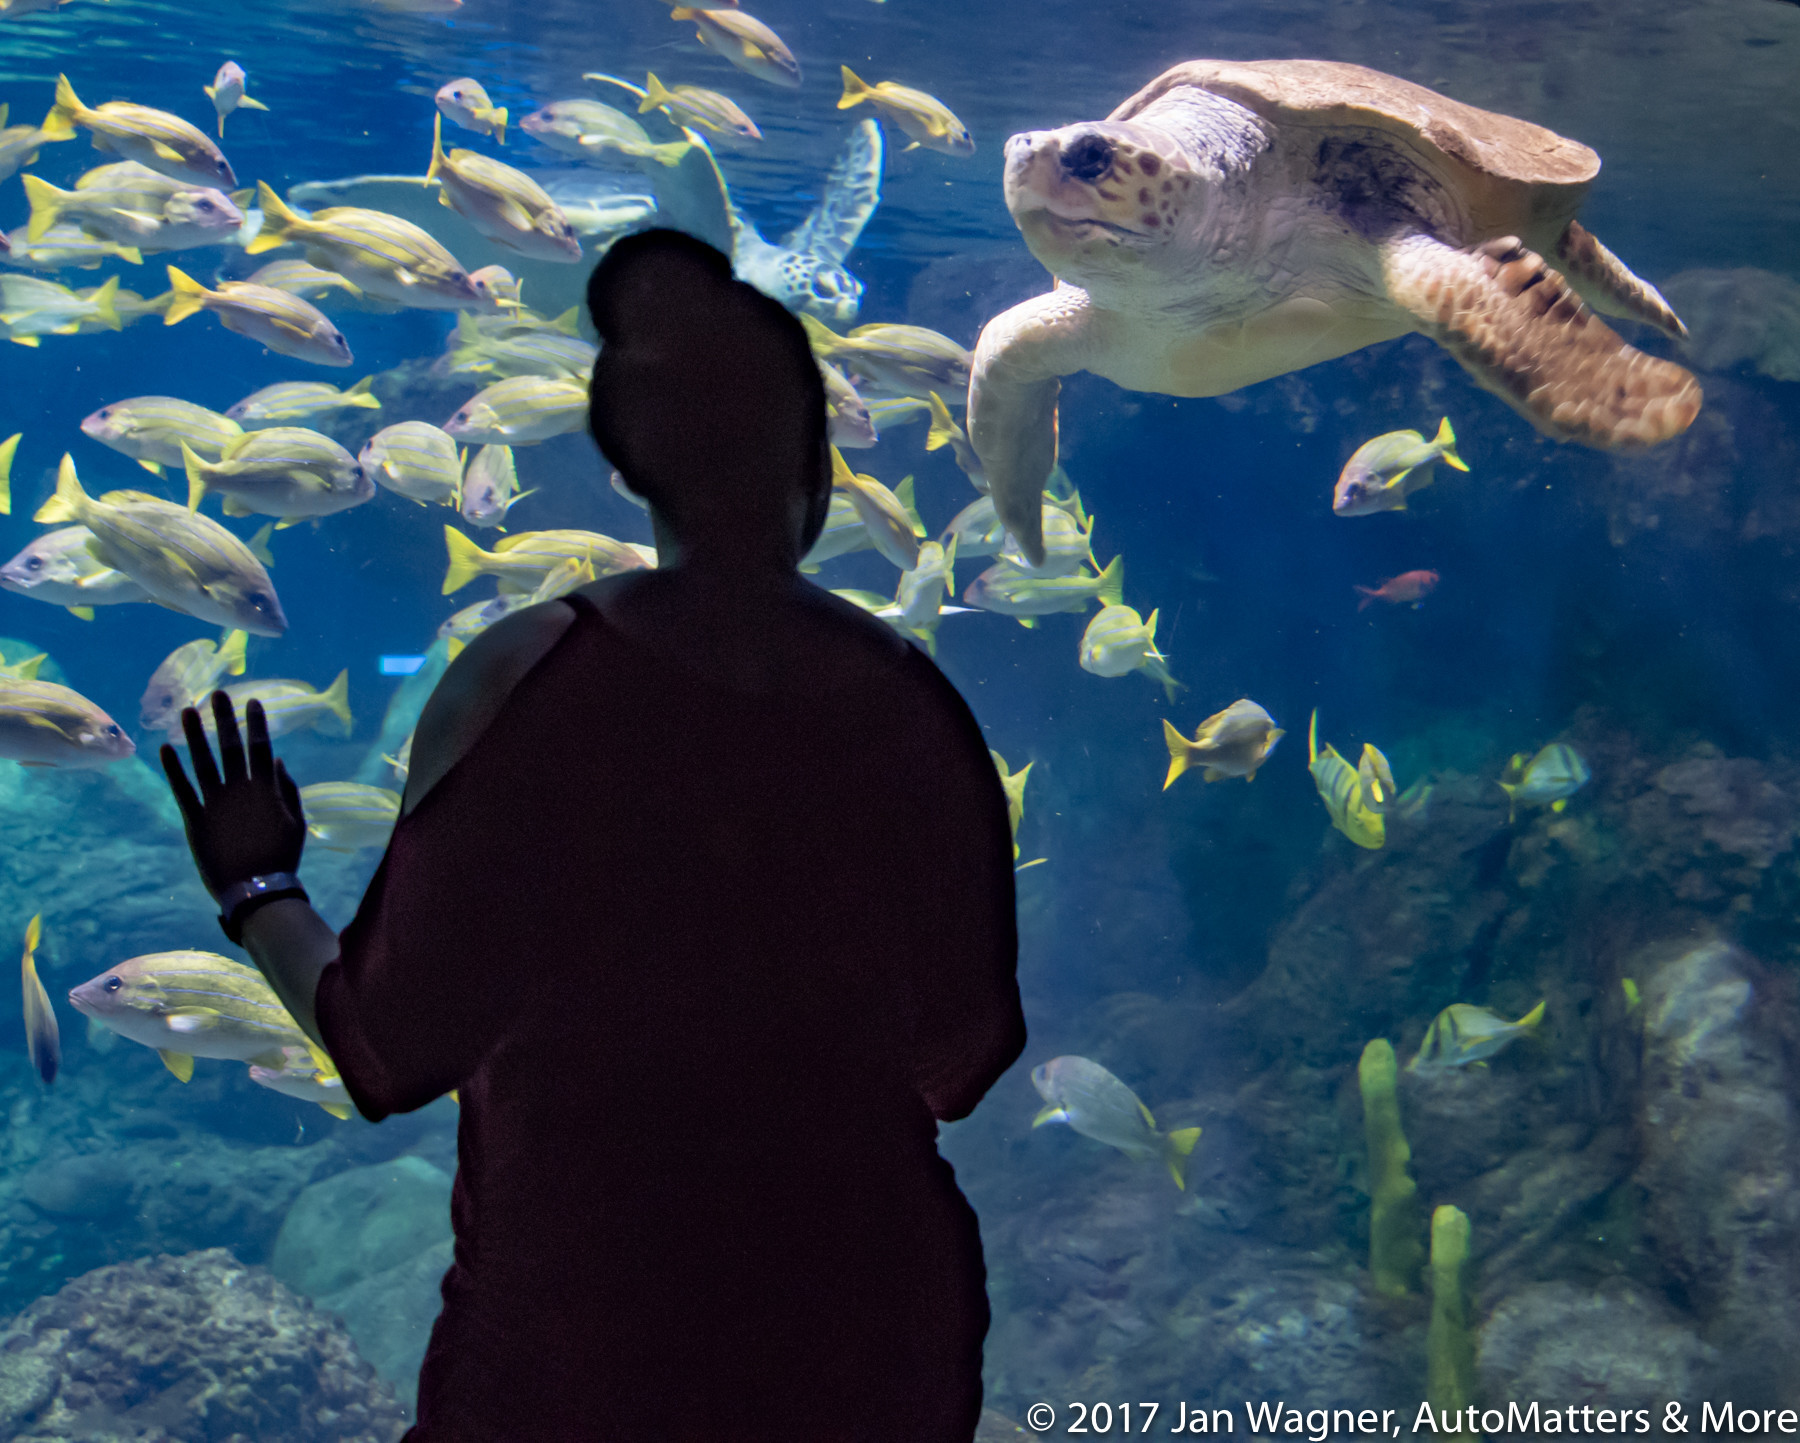 Interacting with a sea turtle